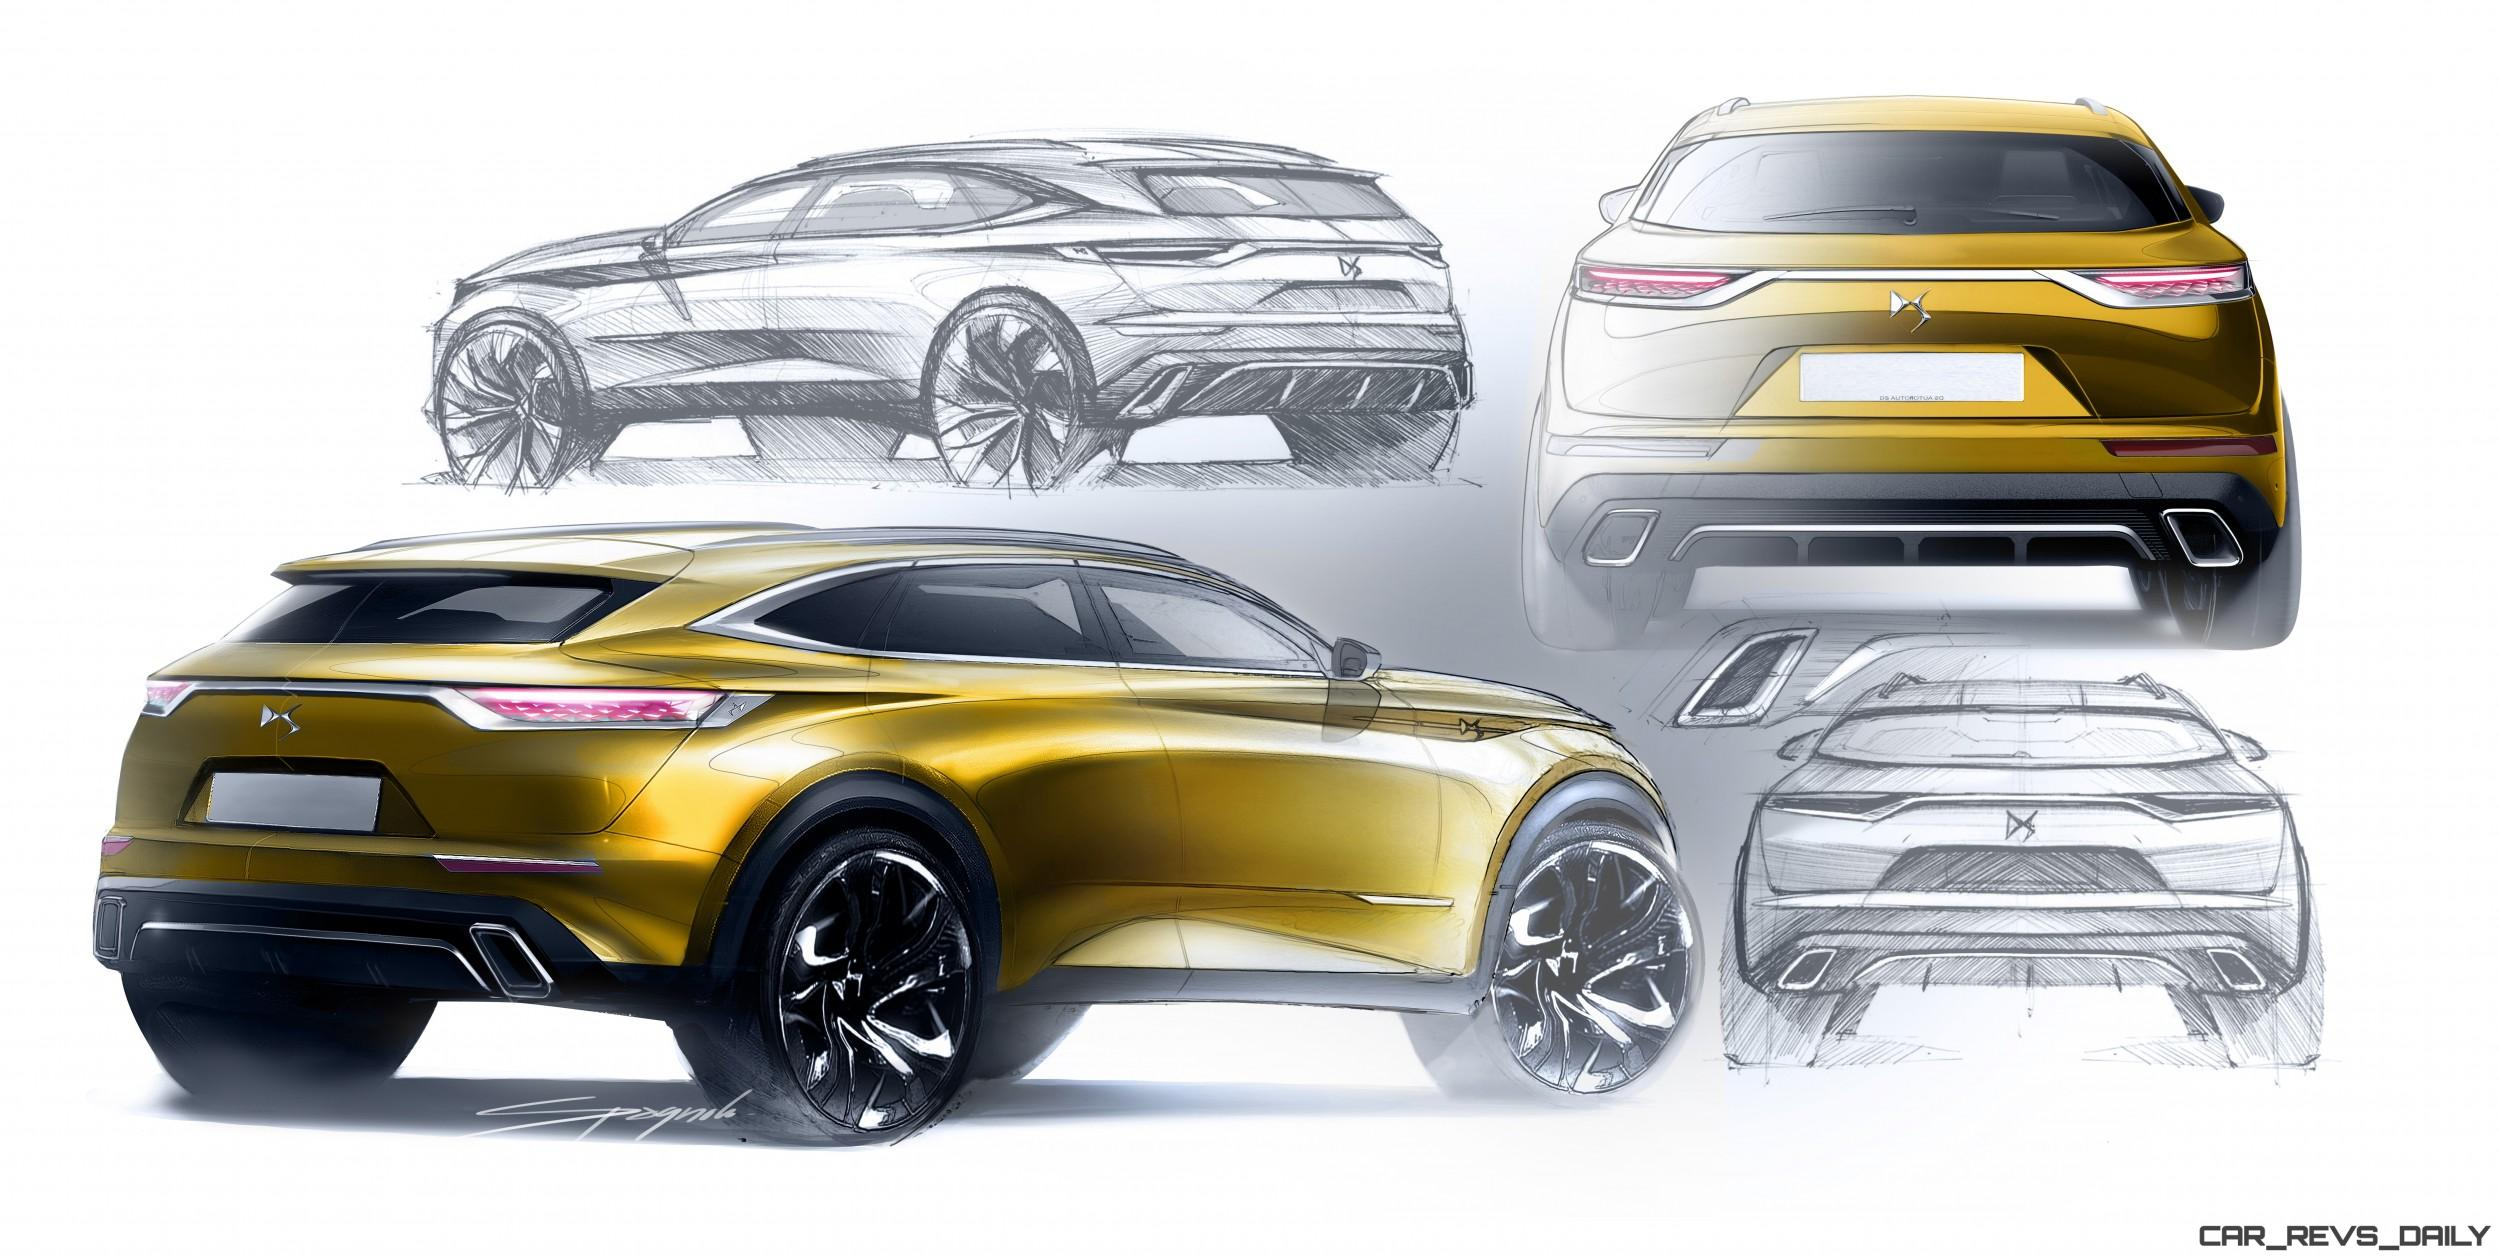 Ds Crossback Design Sketch Montage Suv Rear